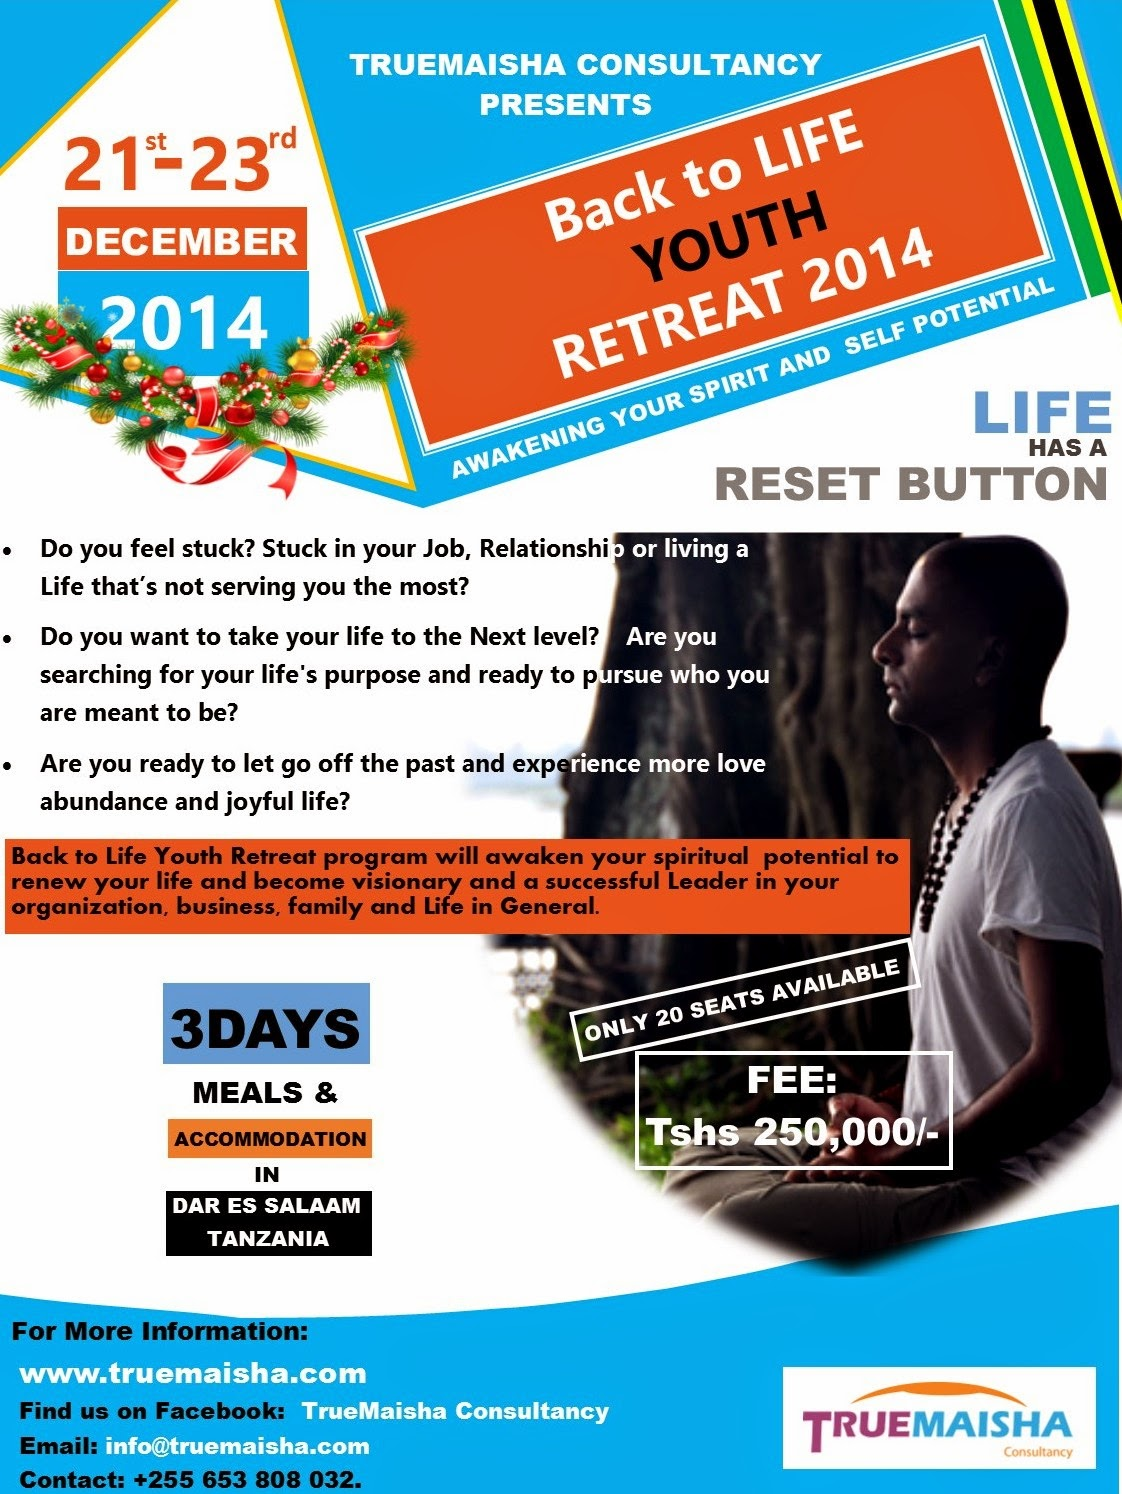 SIGNUP FOR THIS RETREAT NOW!